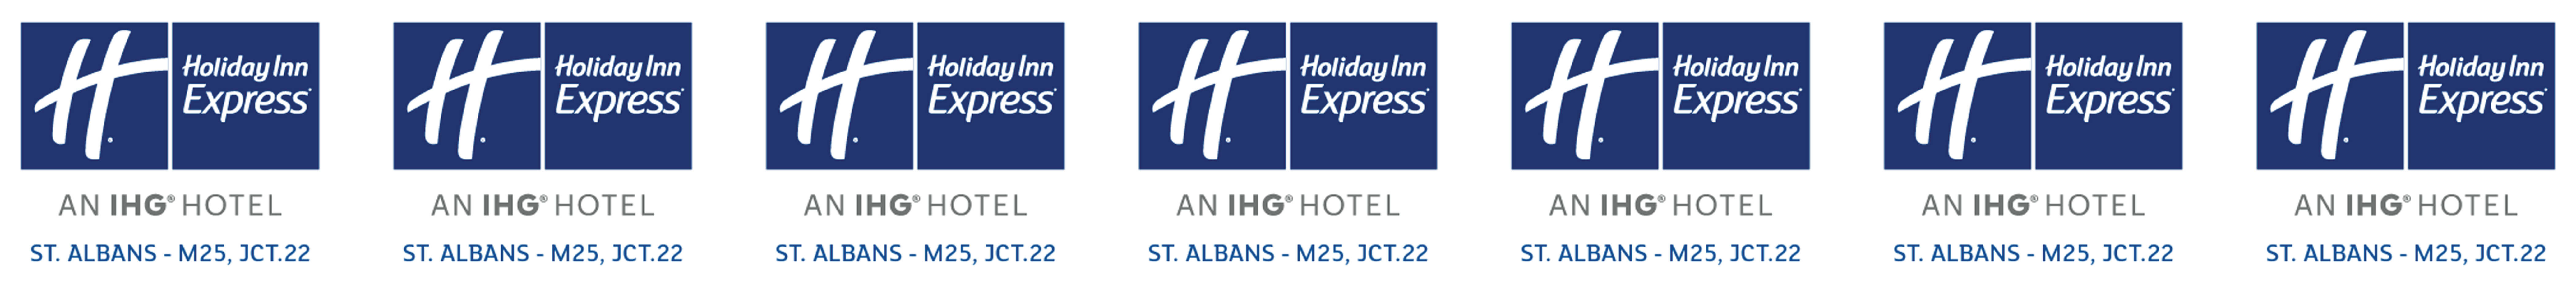 Holiday Inn TBC web banner